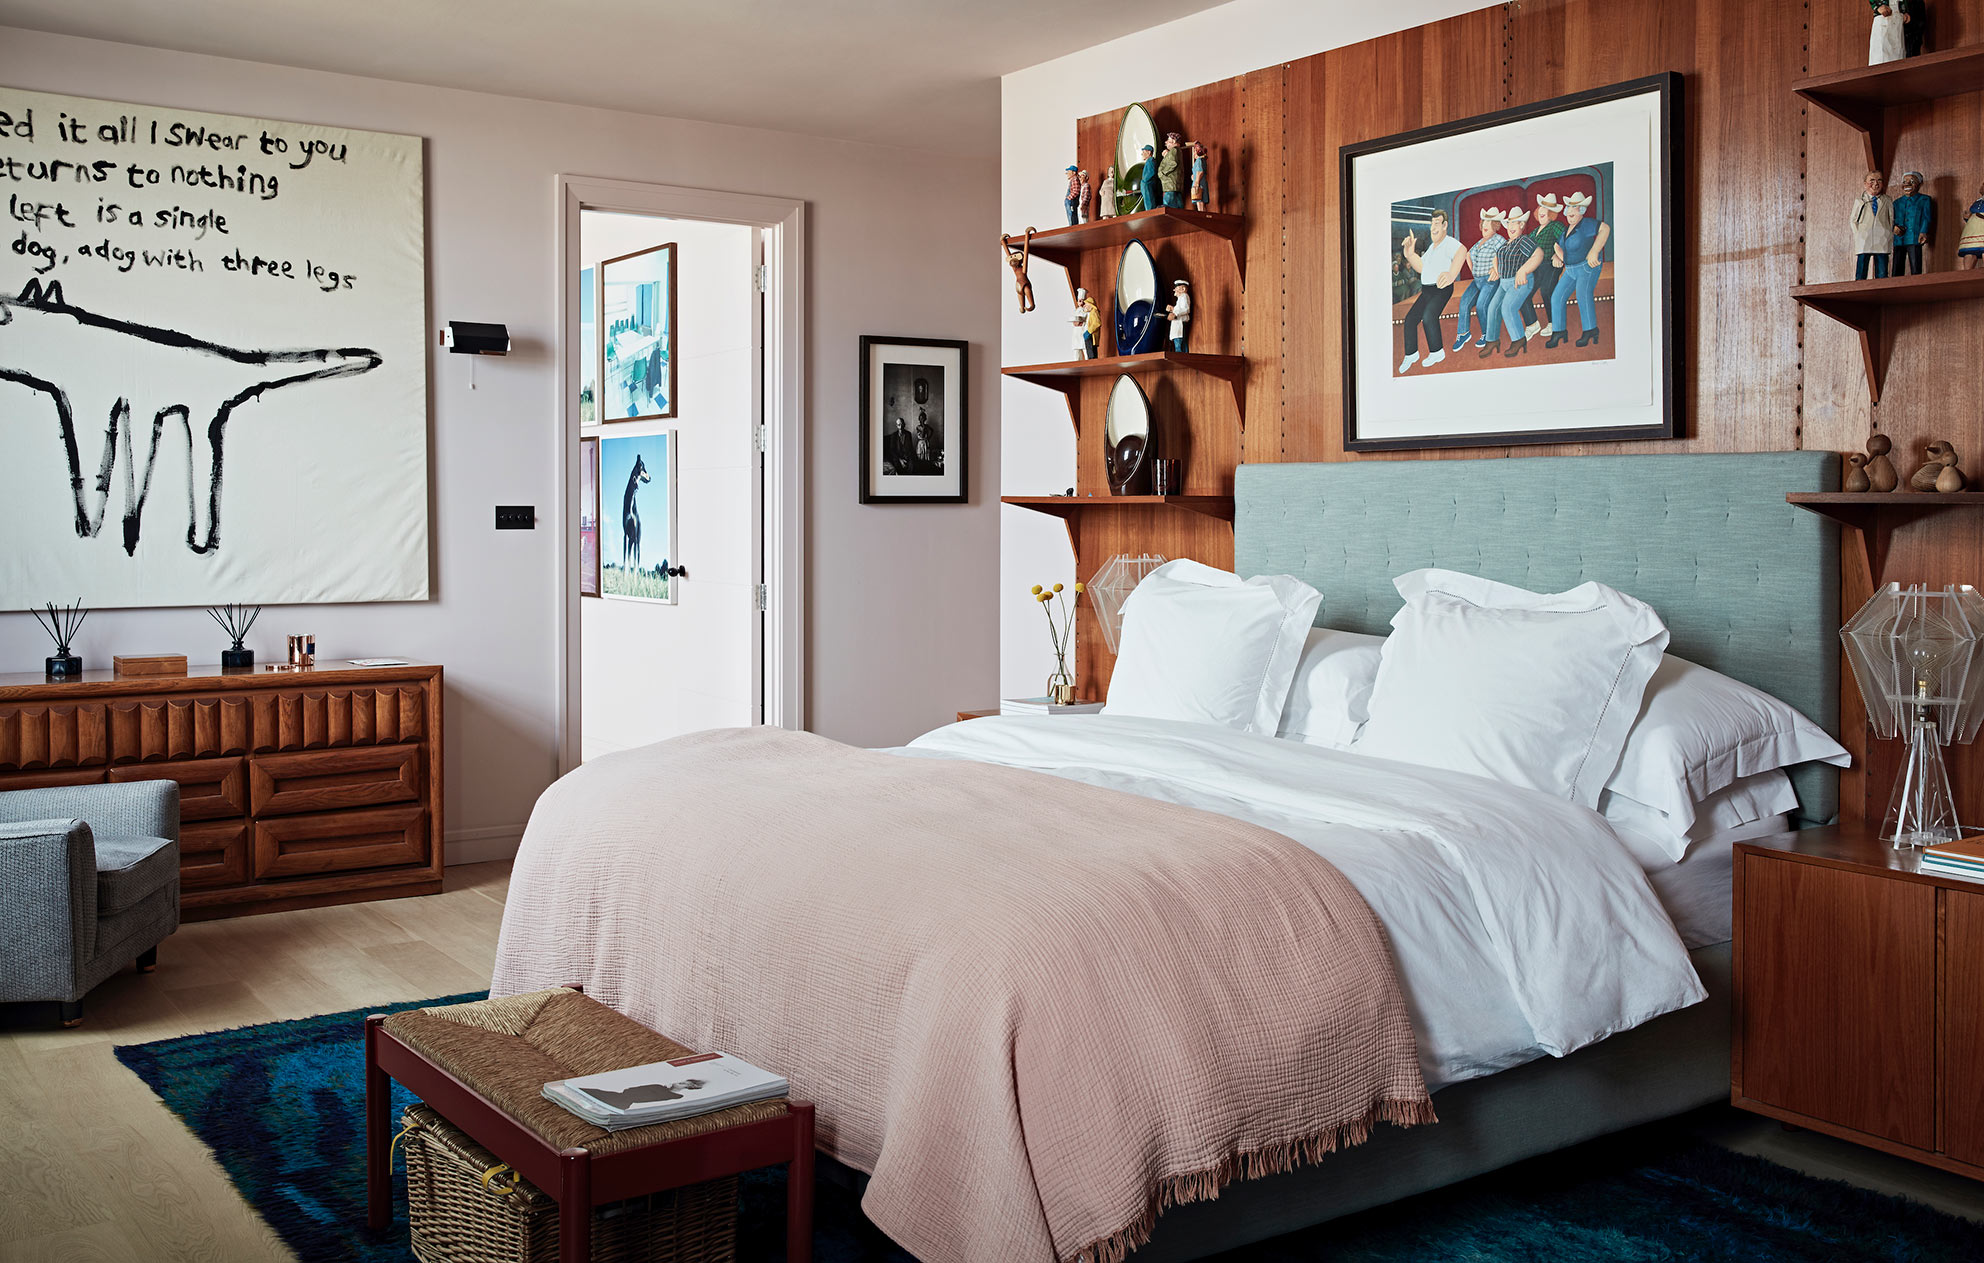 West London pied-a-terre bedroom with wooden bed surround